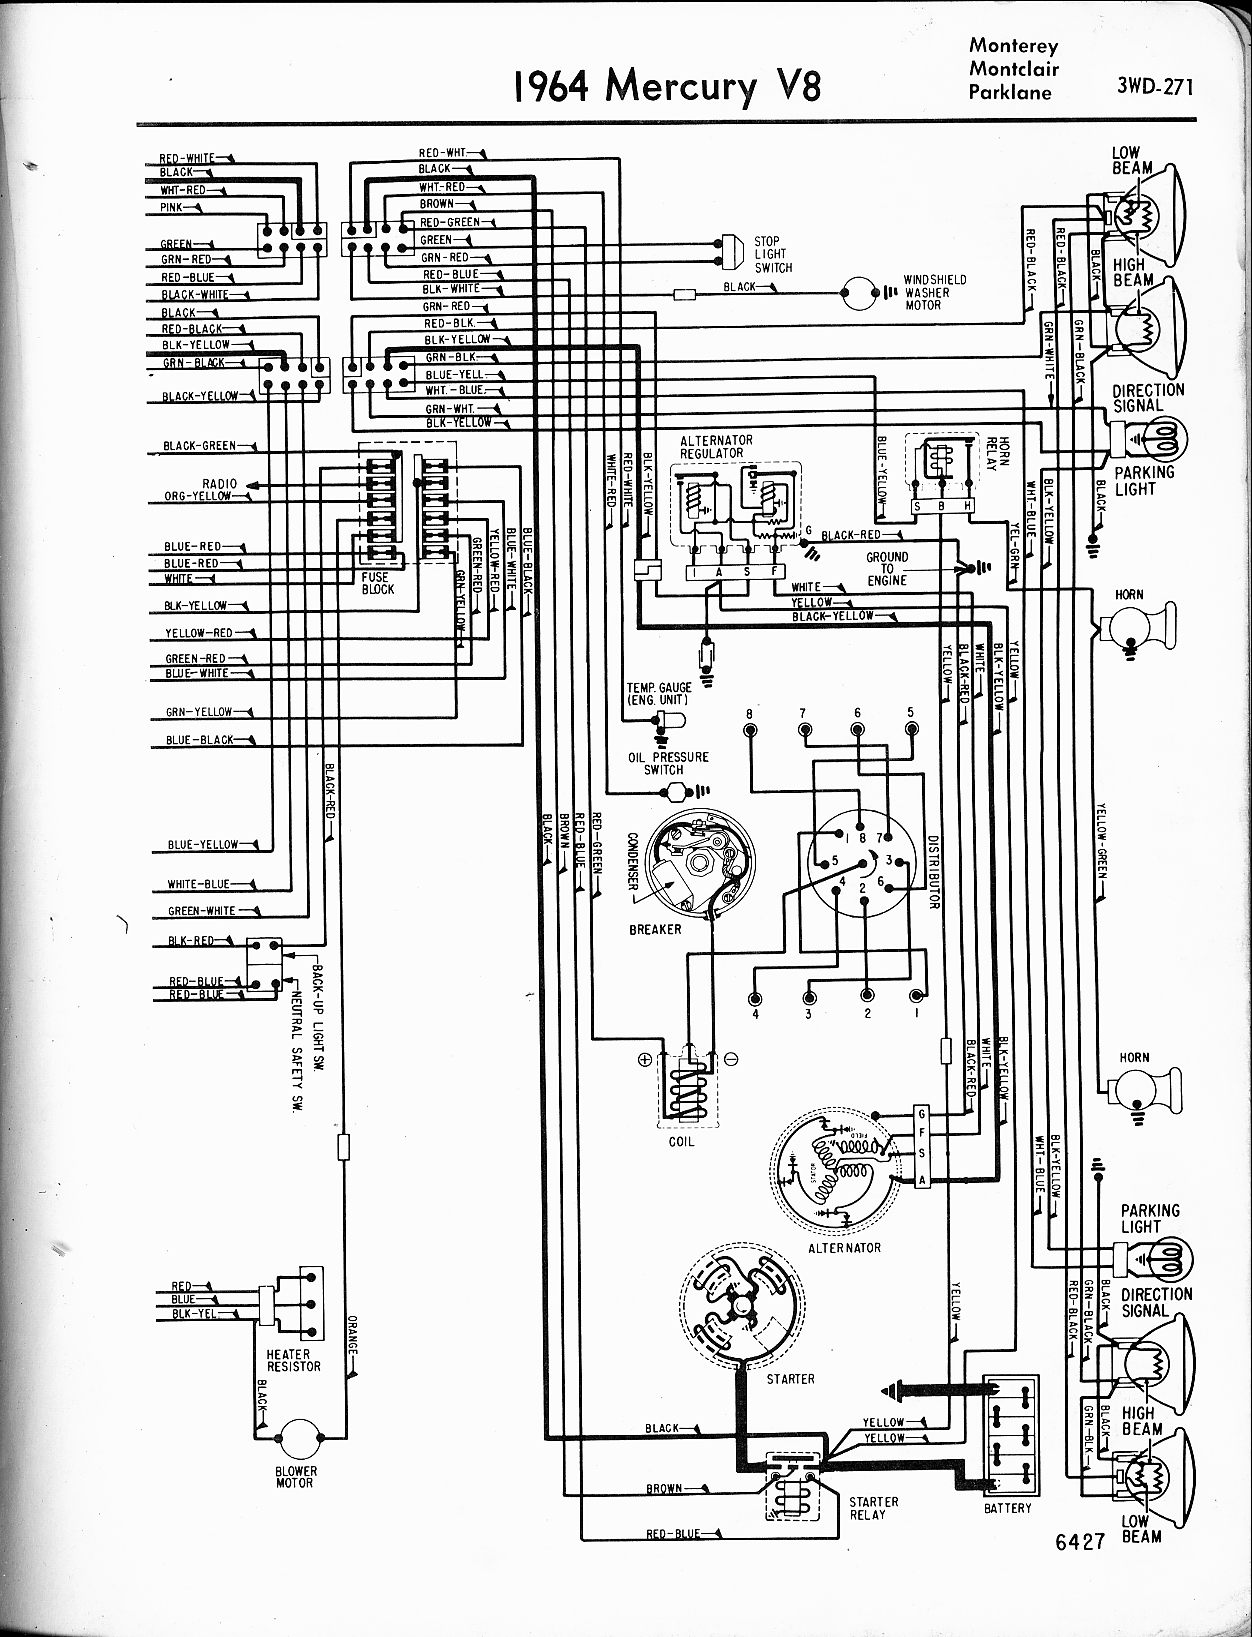 1961 corvette fuse box wiring diagram 1955 chevy fuse box schematics online